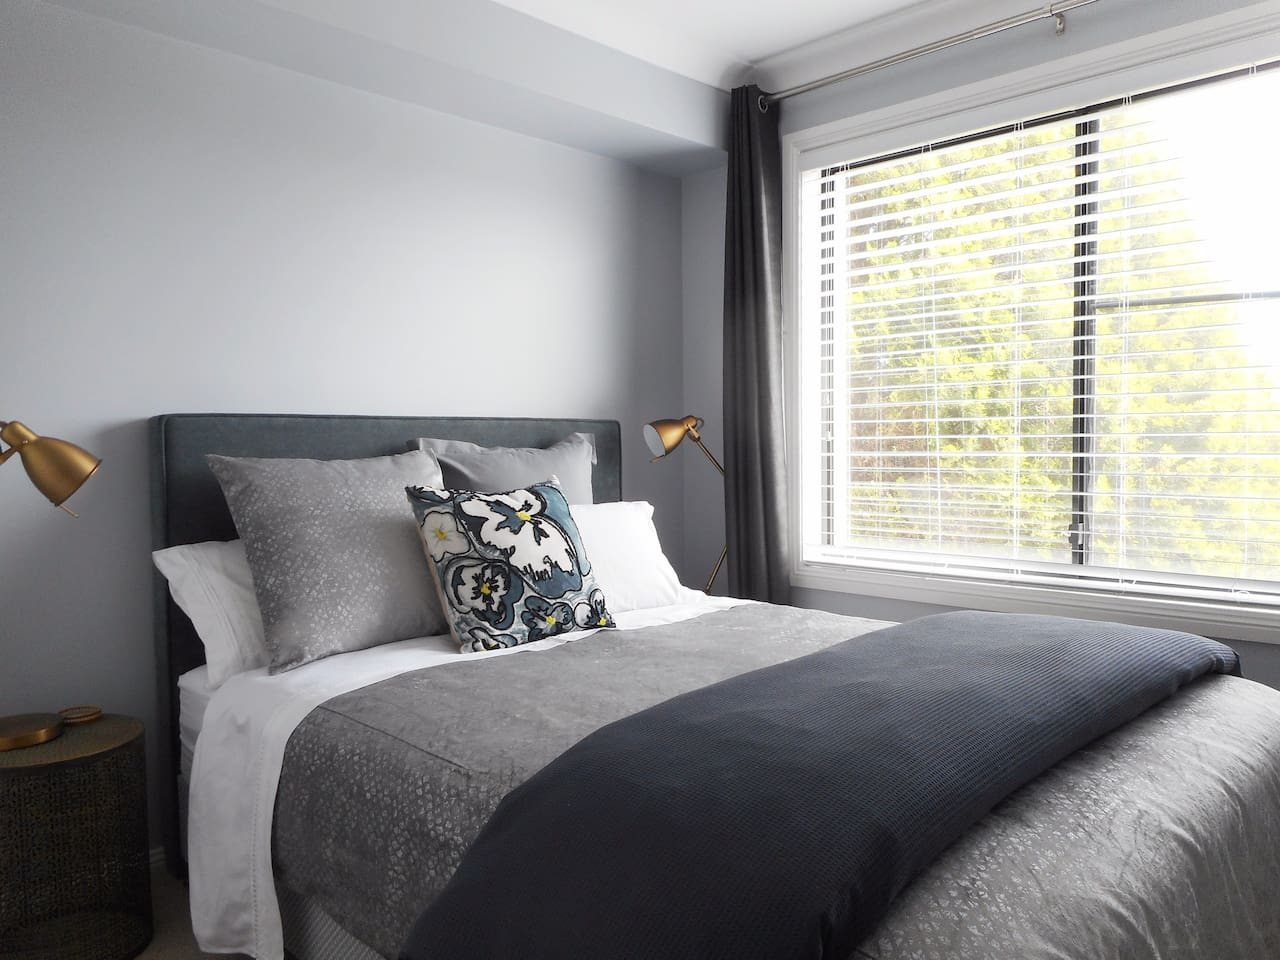 Comfortable bed and quality linen for a wonderful night